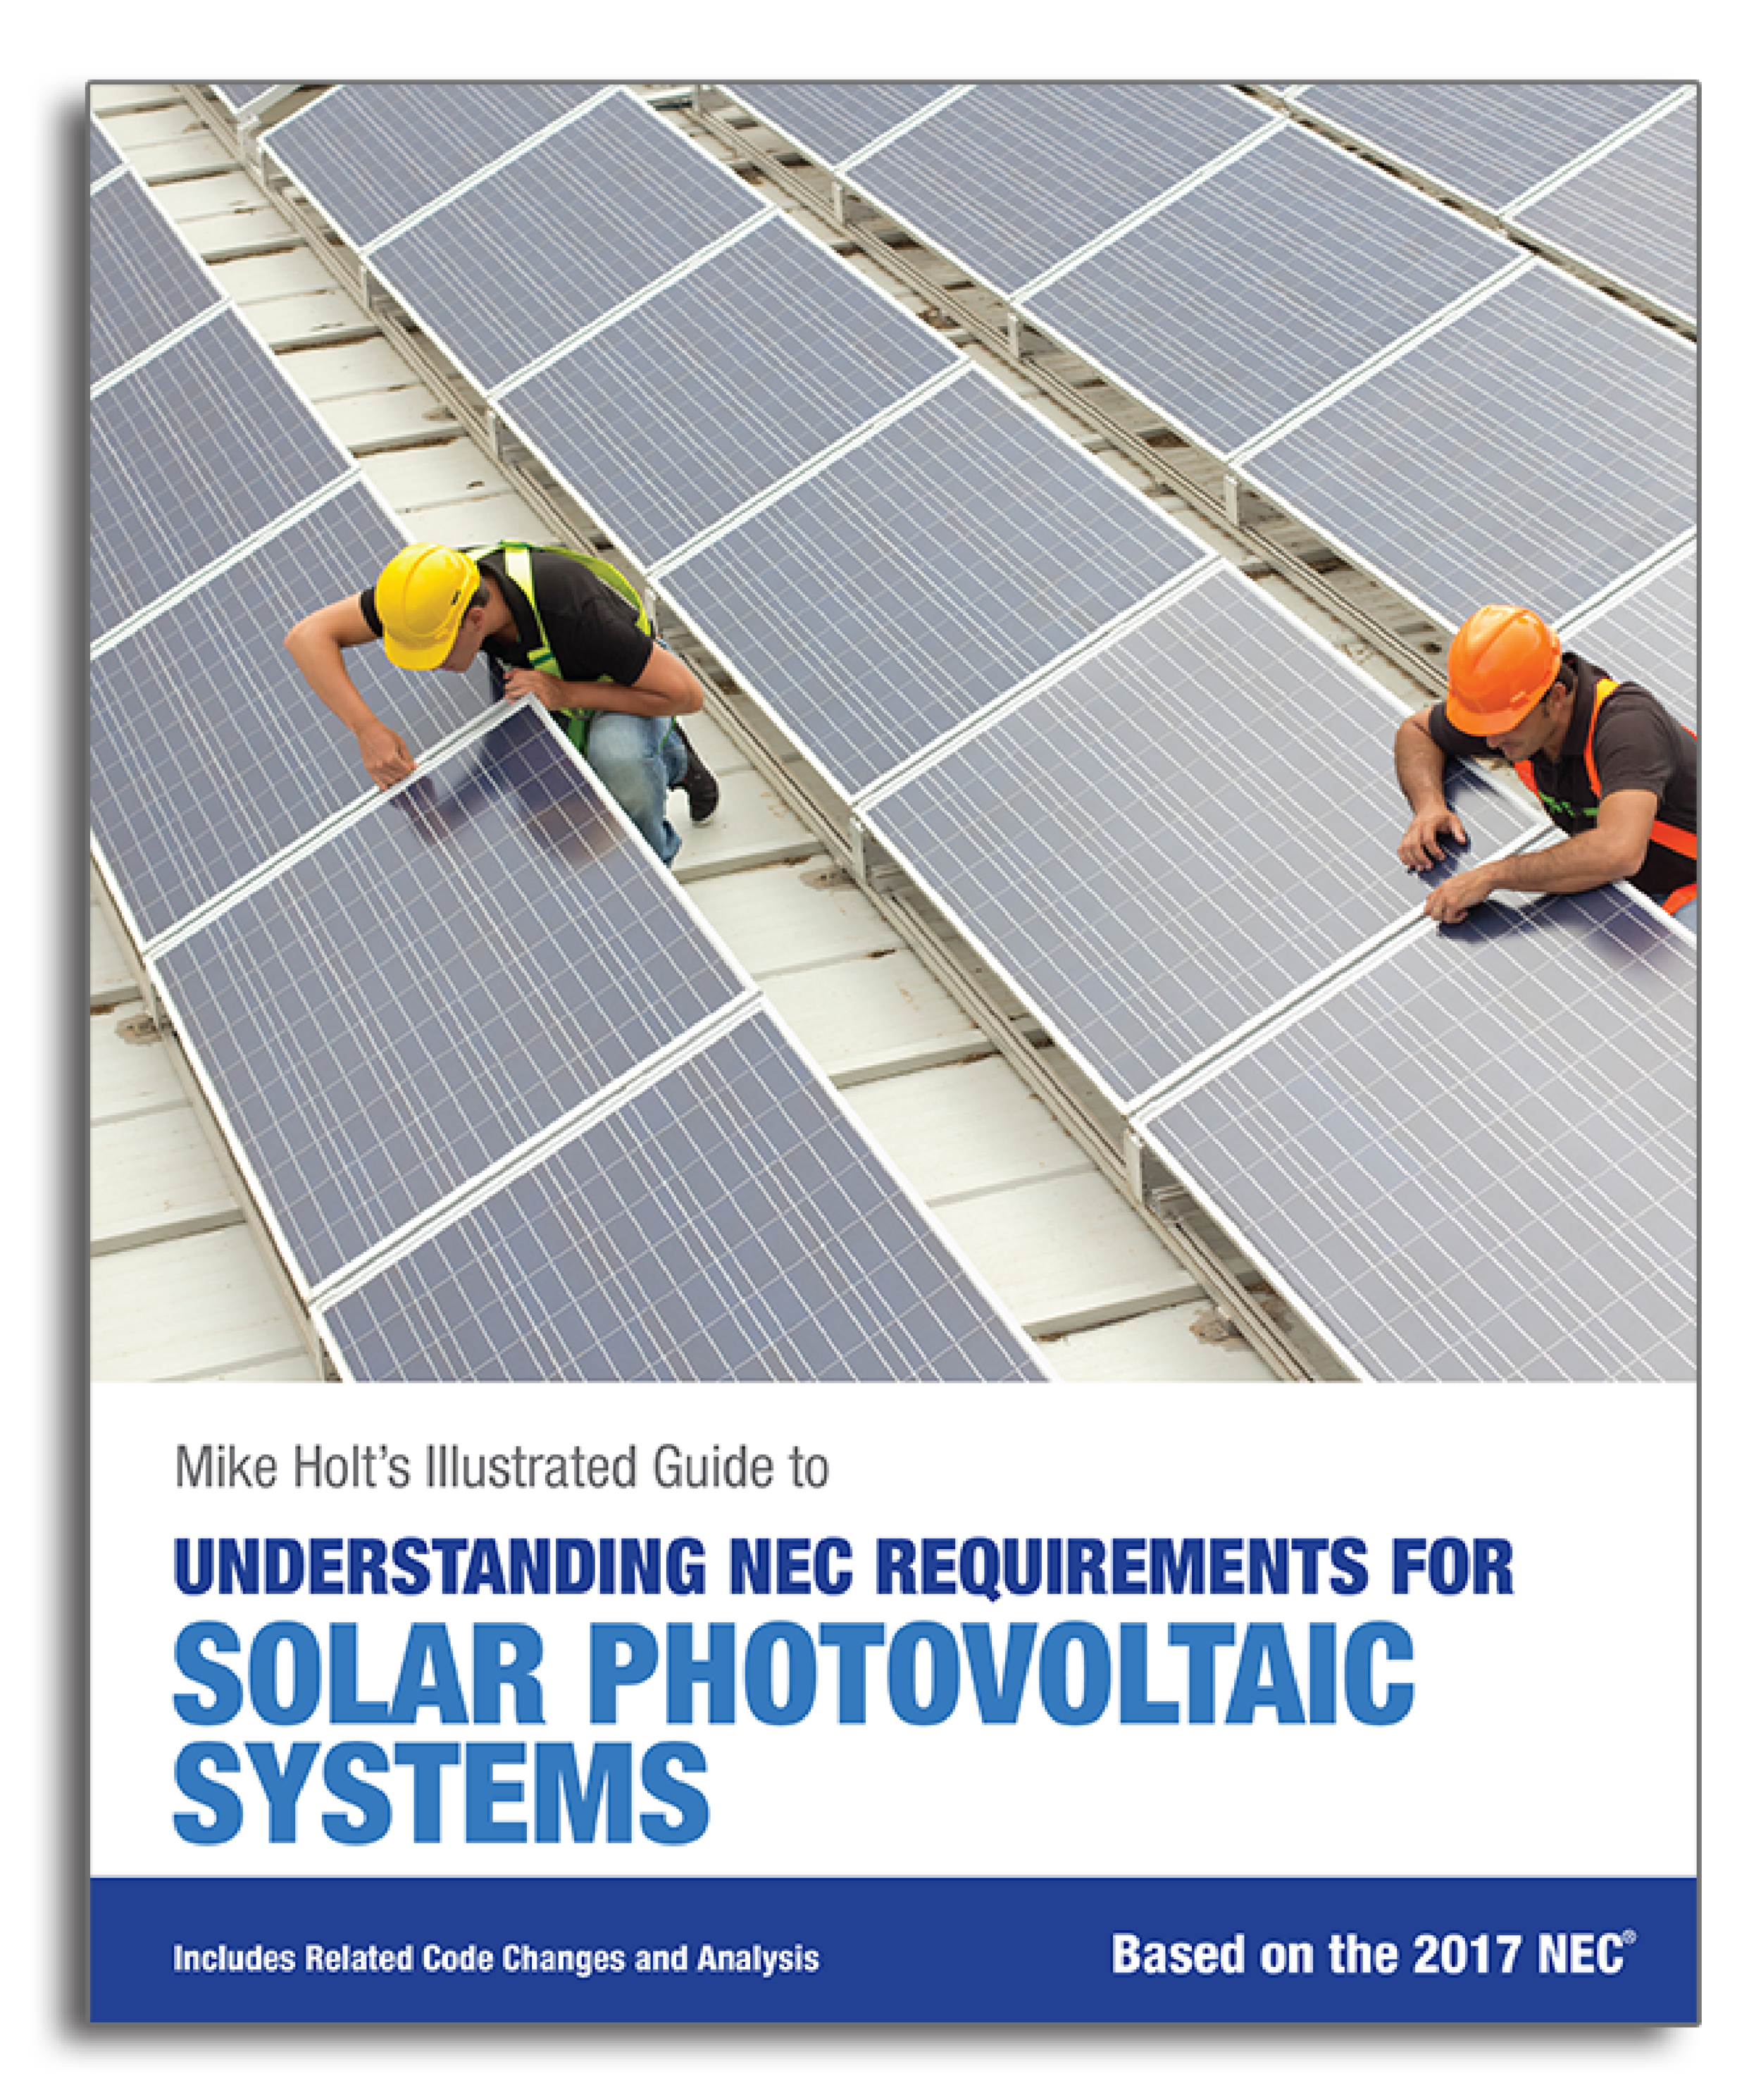 Understanding NEC Requirements for Solar Photovoltaic Systems - An illustrated guide to the National Electrical Code as it pertains to solar. Complete with 2017 code changes and commentary.